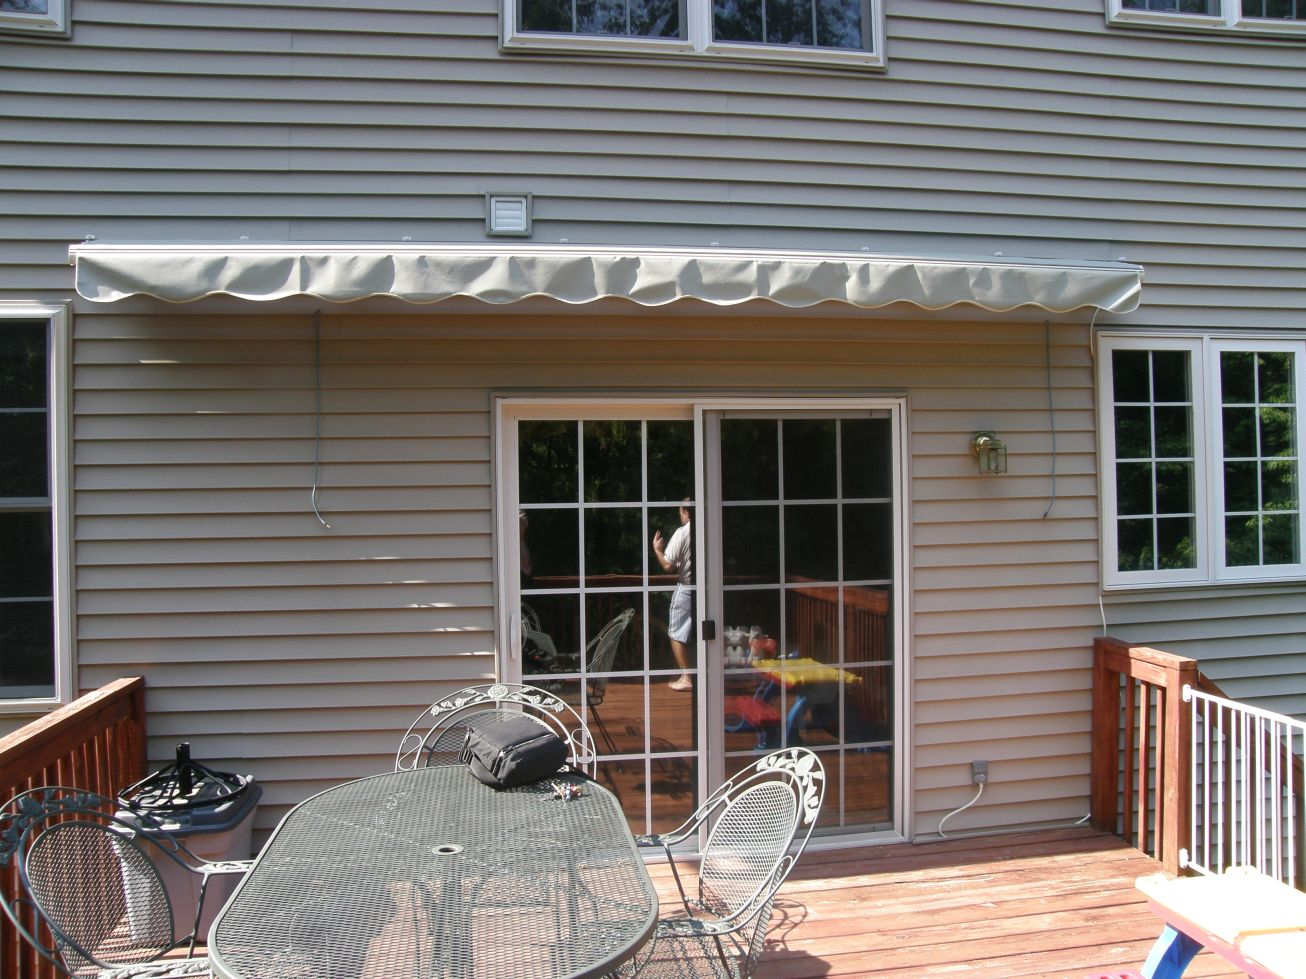 vinyl fabric on a motorized retractable awning